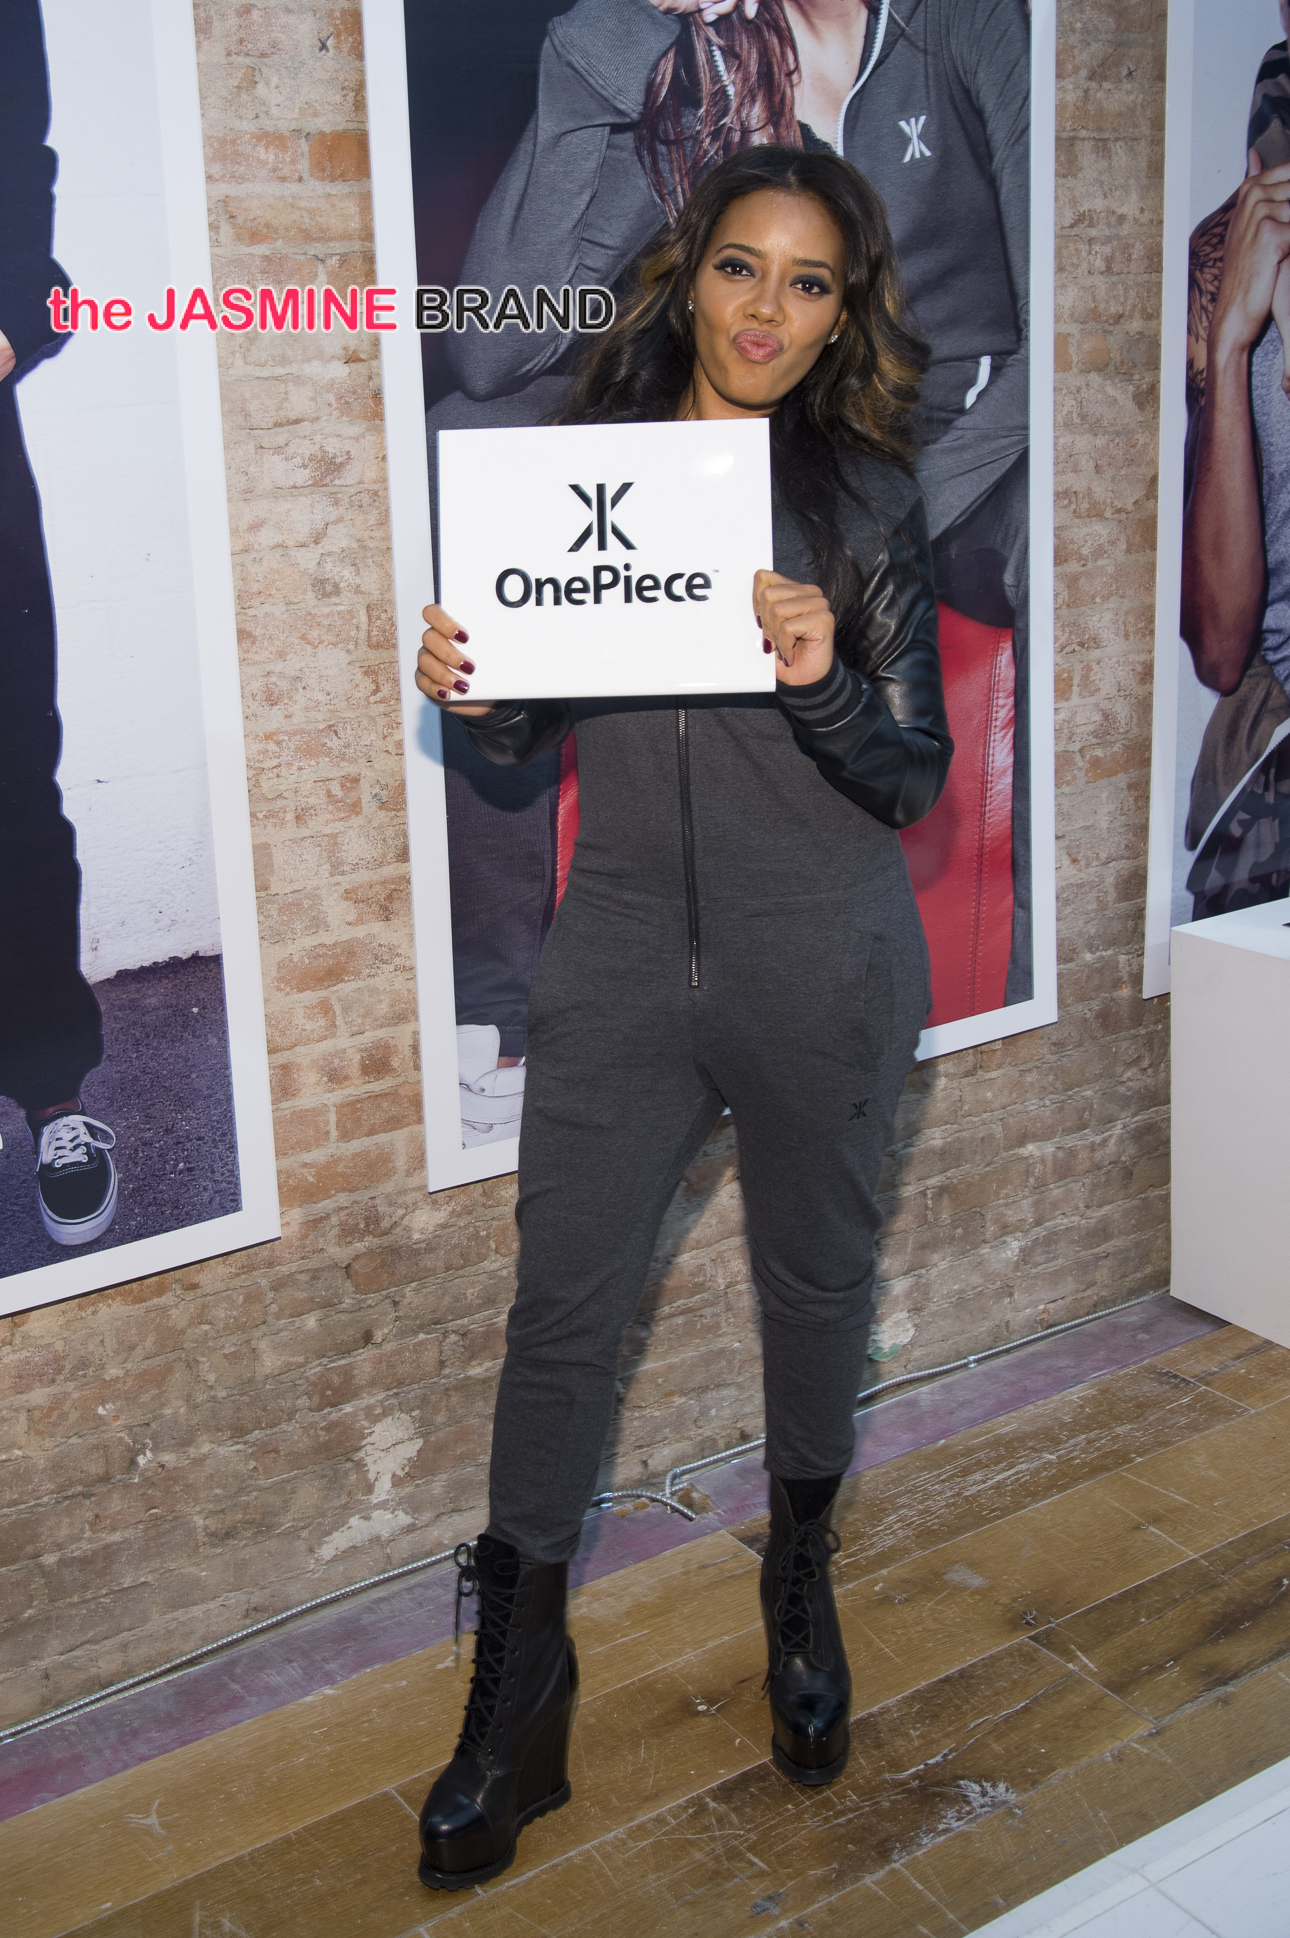 """Norwegian Clothing """"One Piece"""" Hosts Store Opening in New York City on November 7, 2014"""